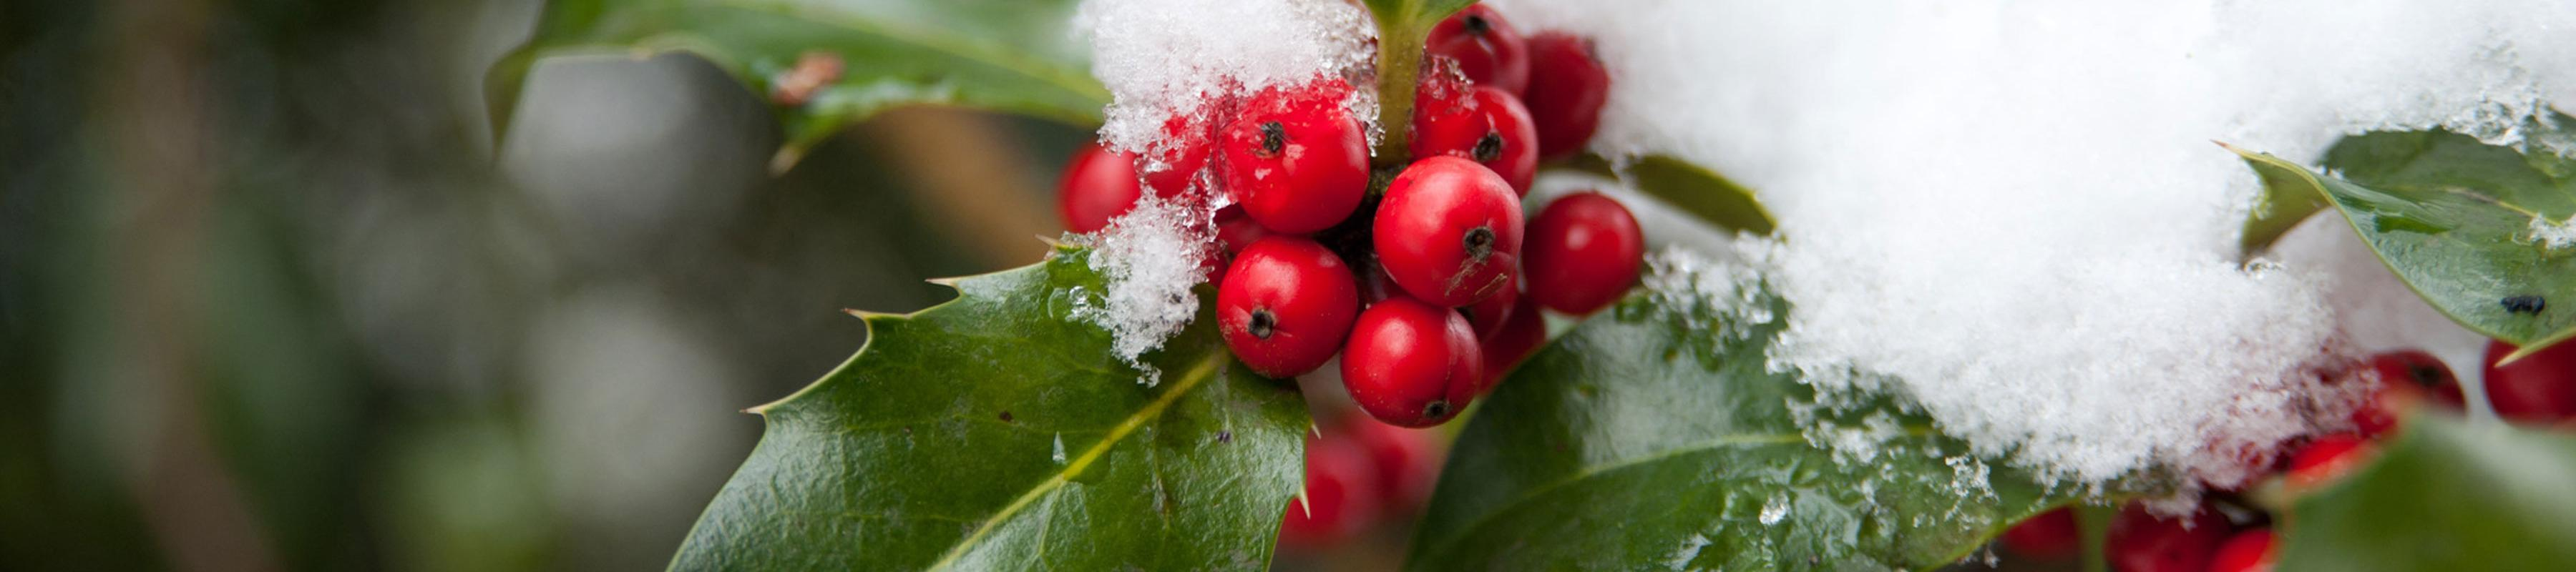 Holly leaves and berries with snow